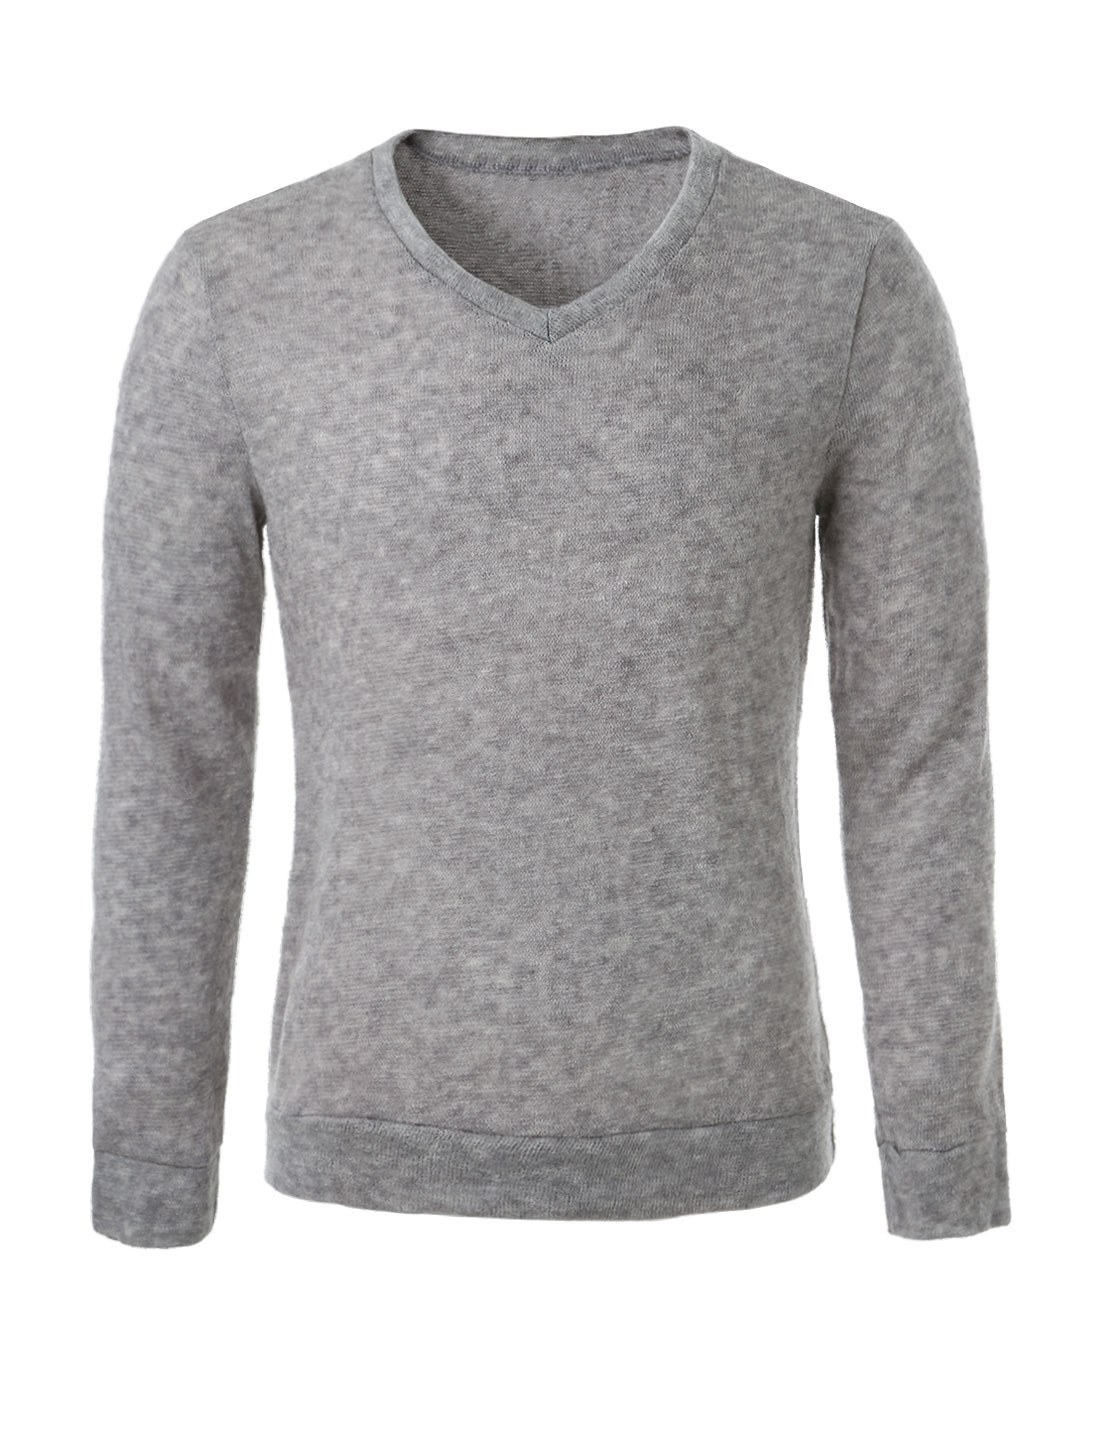 Cozy Fit V Neck Slipover Design Stretchy Sweater Heather Gray L for Men